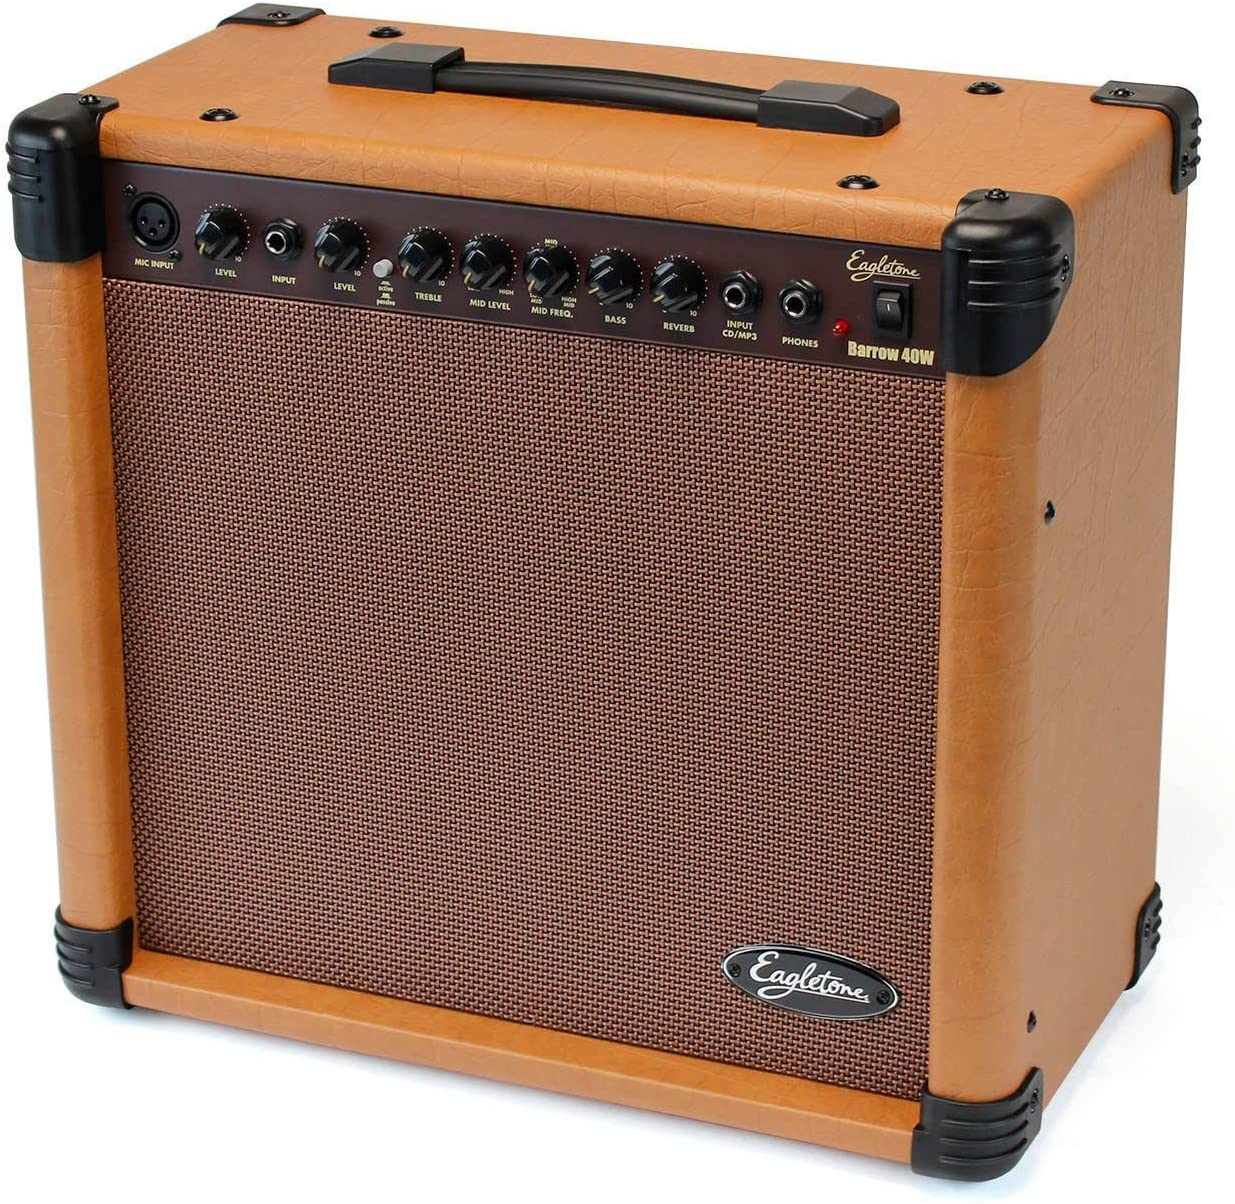 Eagletone Barrow amplificador de guitarra acústica de Brown 40W